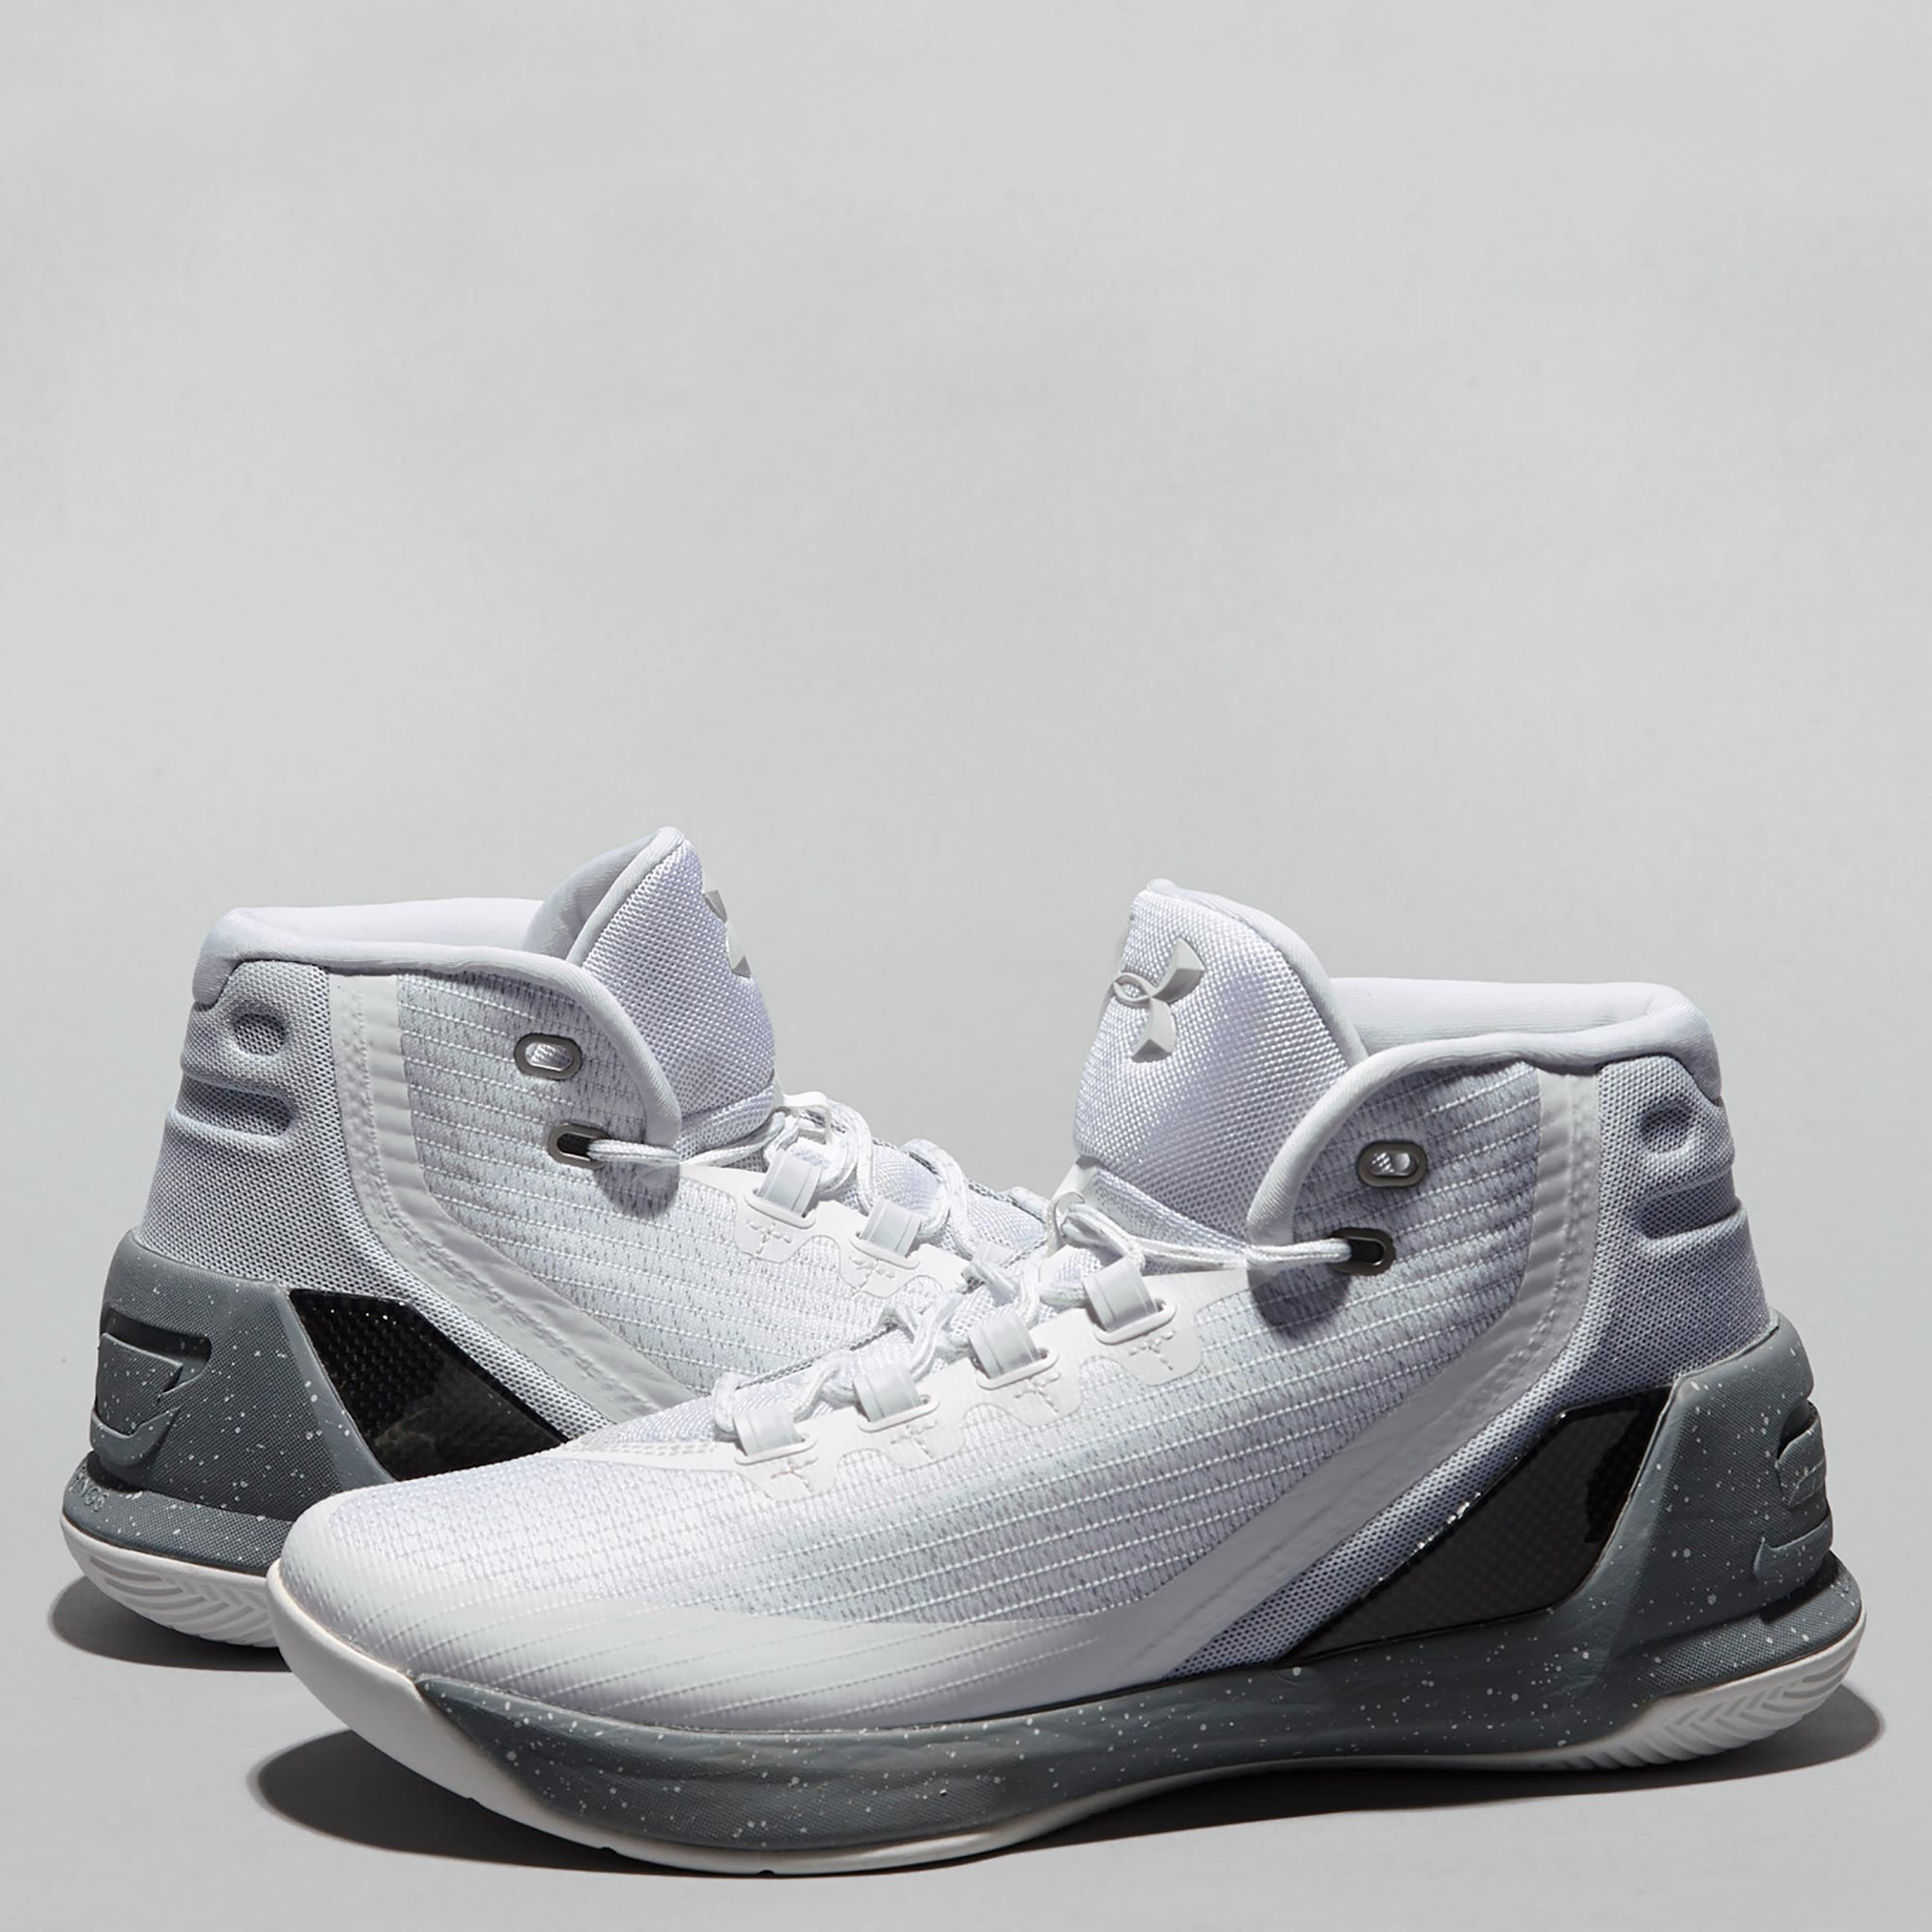 Under Armour Curry 3 Basketball Shoe - Domino